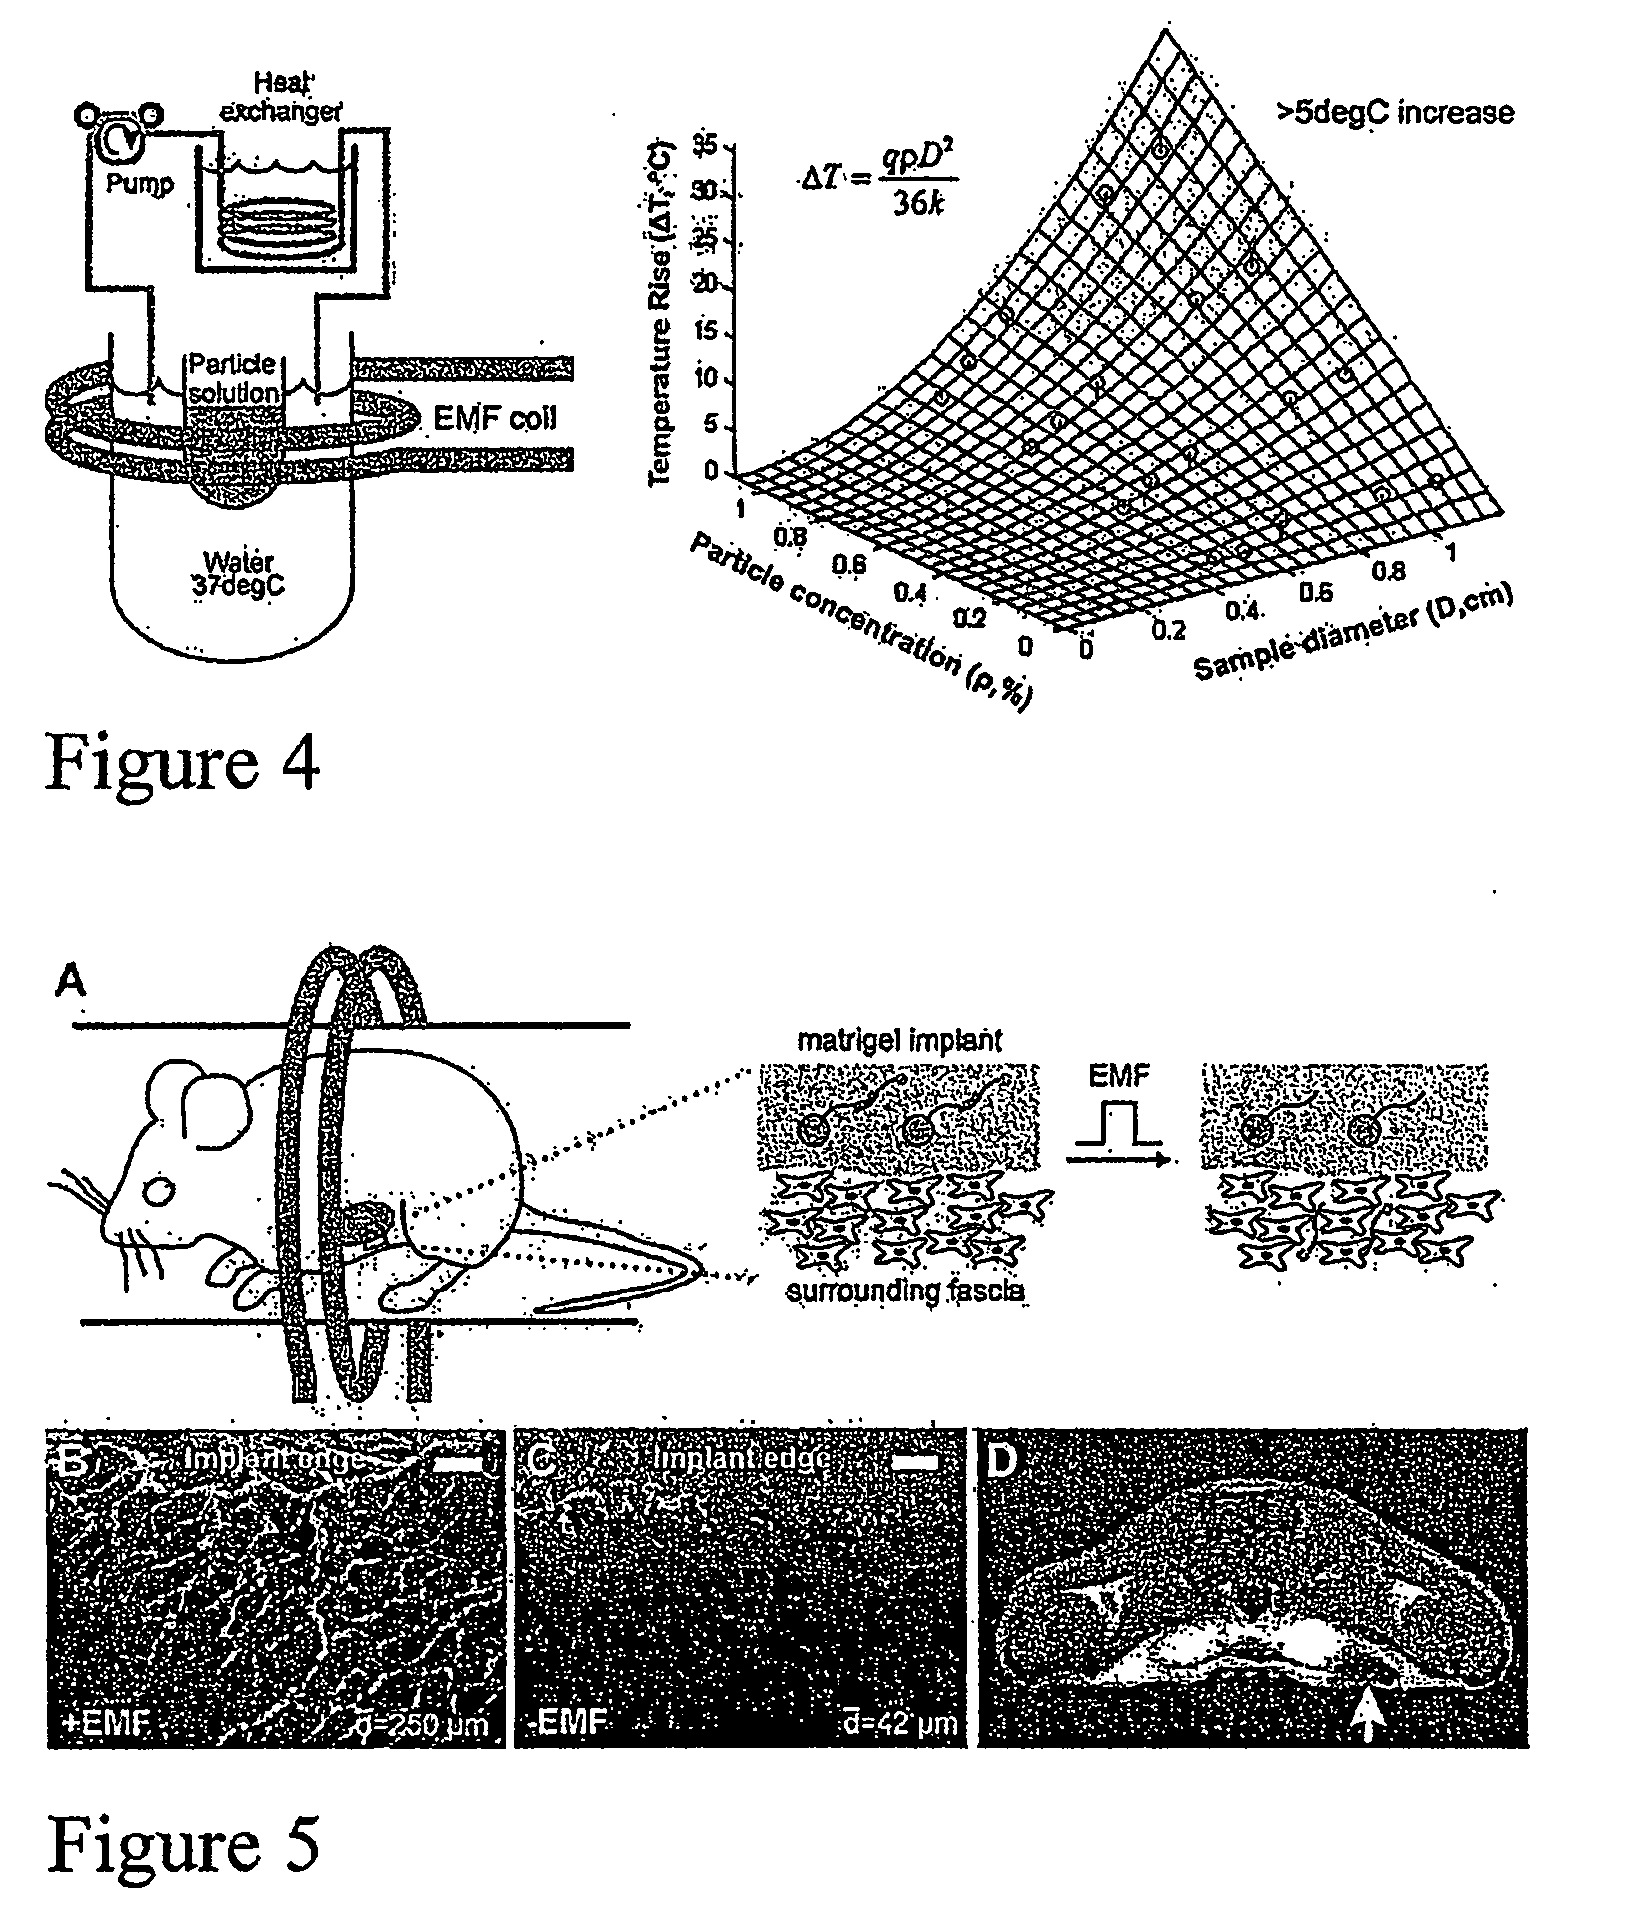 Wo2008073856a2 Delivery Of Nanoparticles And Or Agents To Cells Likewise Eagle Circuit Board Cad On Electrical Ladder Logic Schematic Google Patents